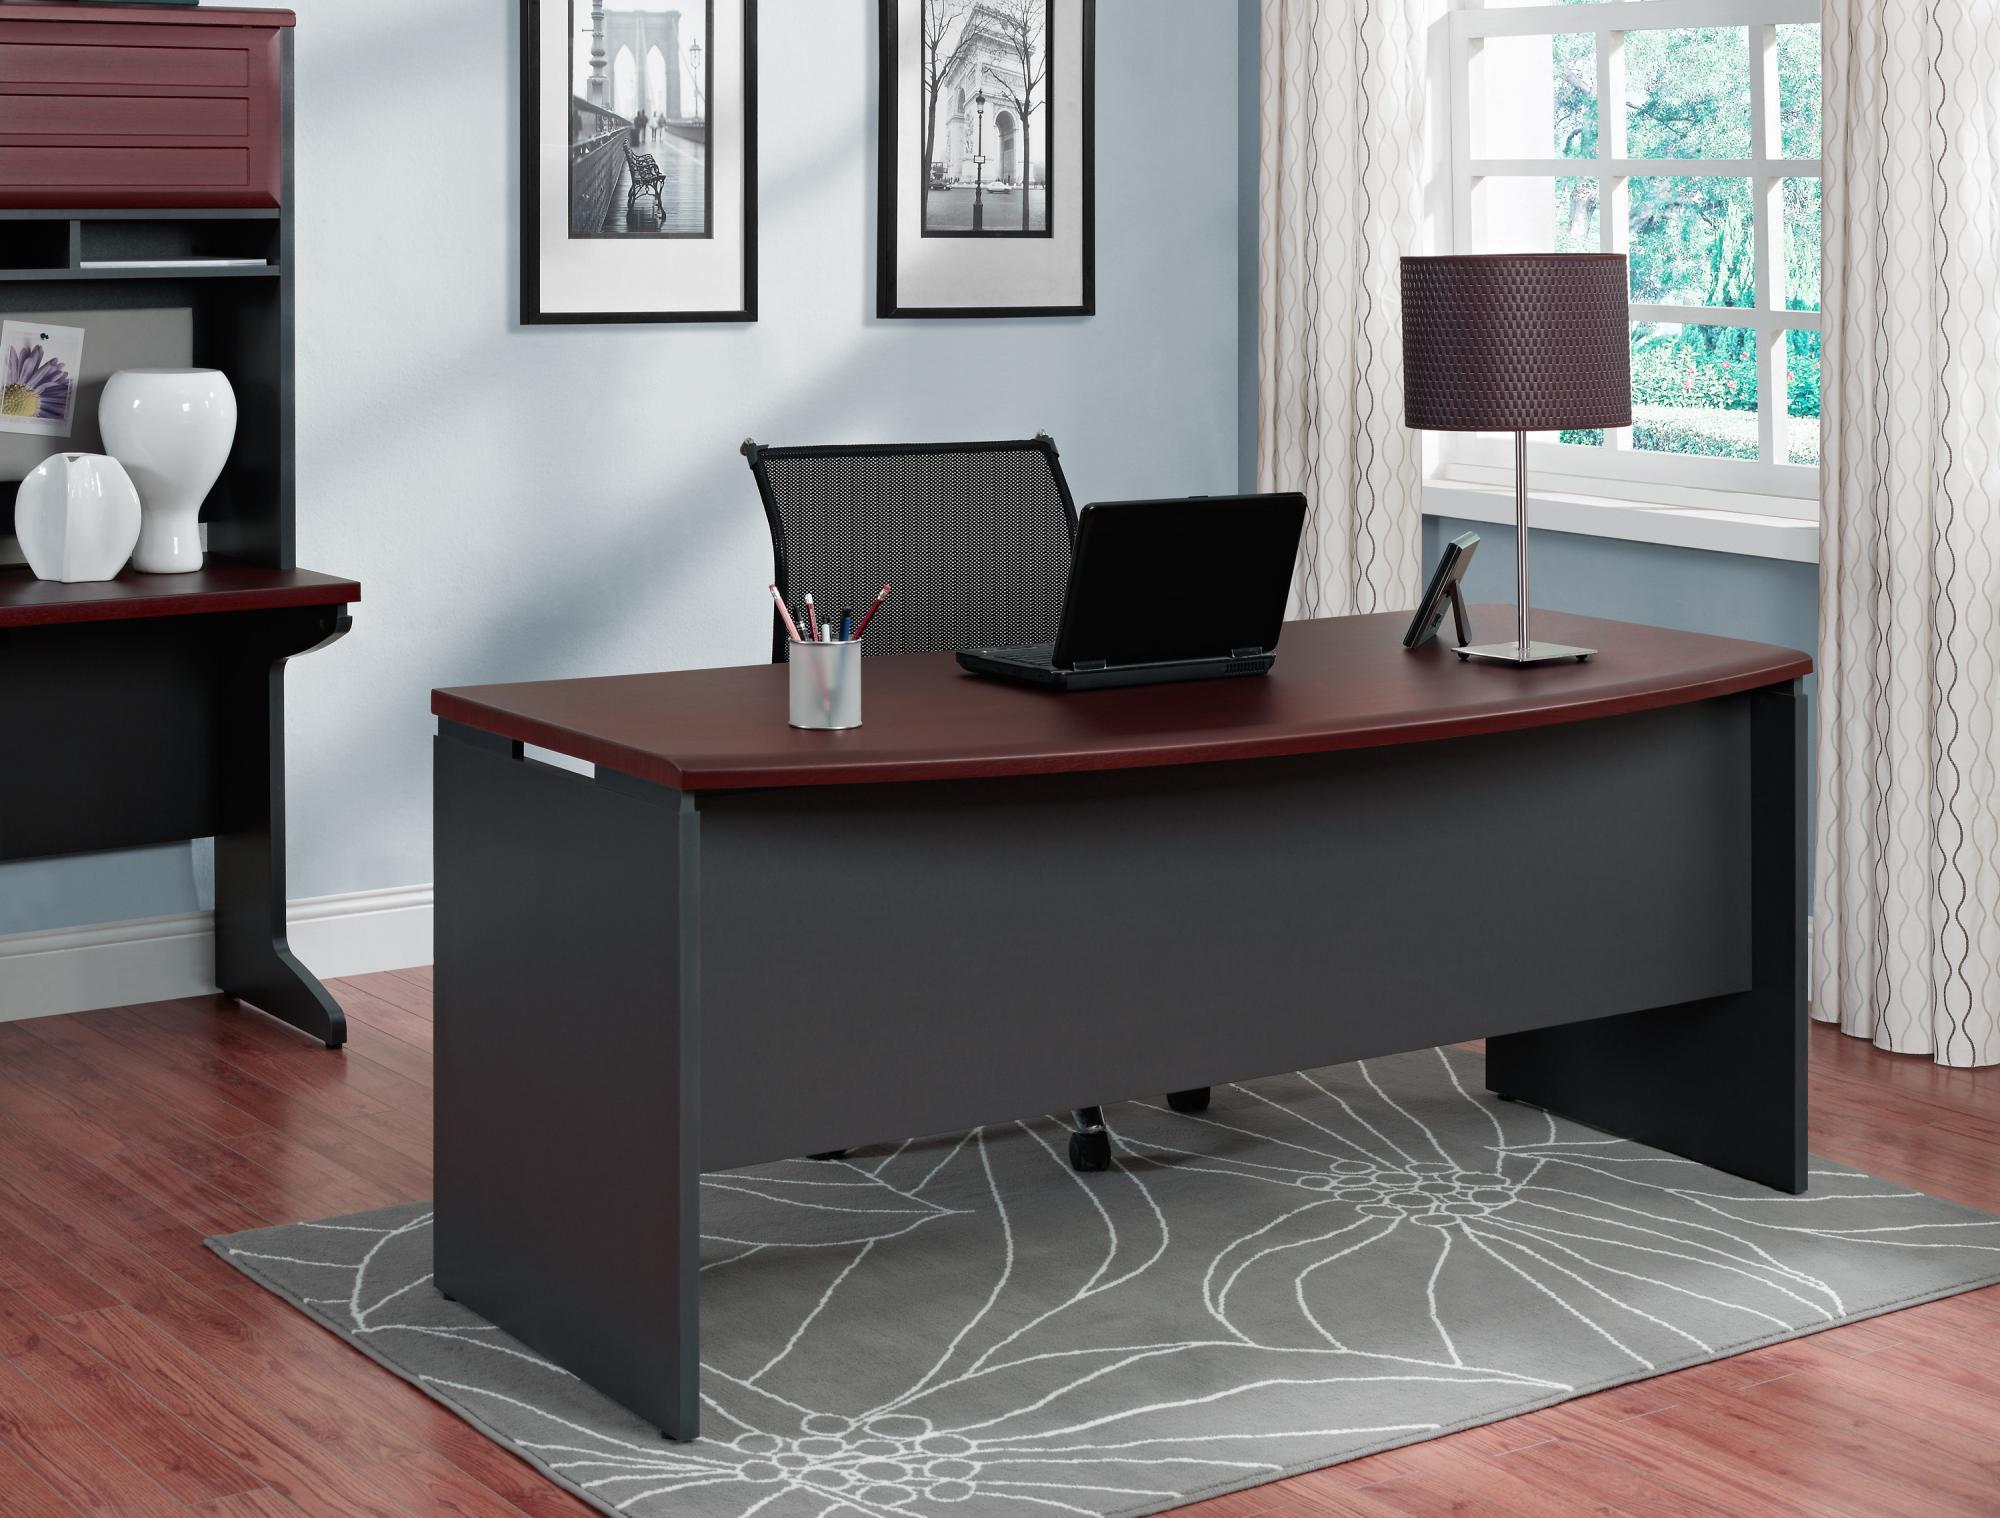 ameriwood furniture pursuit executive desk cherry corner accent table diy granite countertops rustic pedestal gresham nightstand ideas pottery barn side chairs unique dining